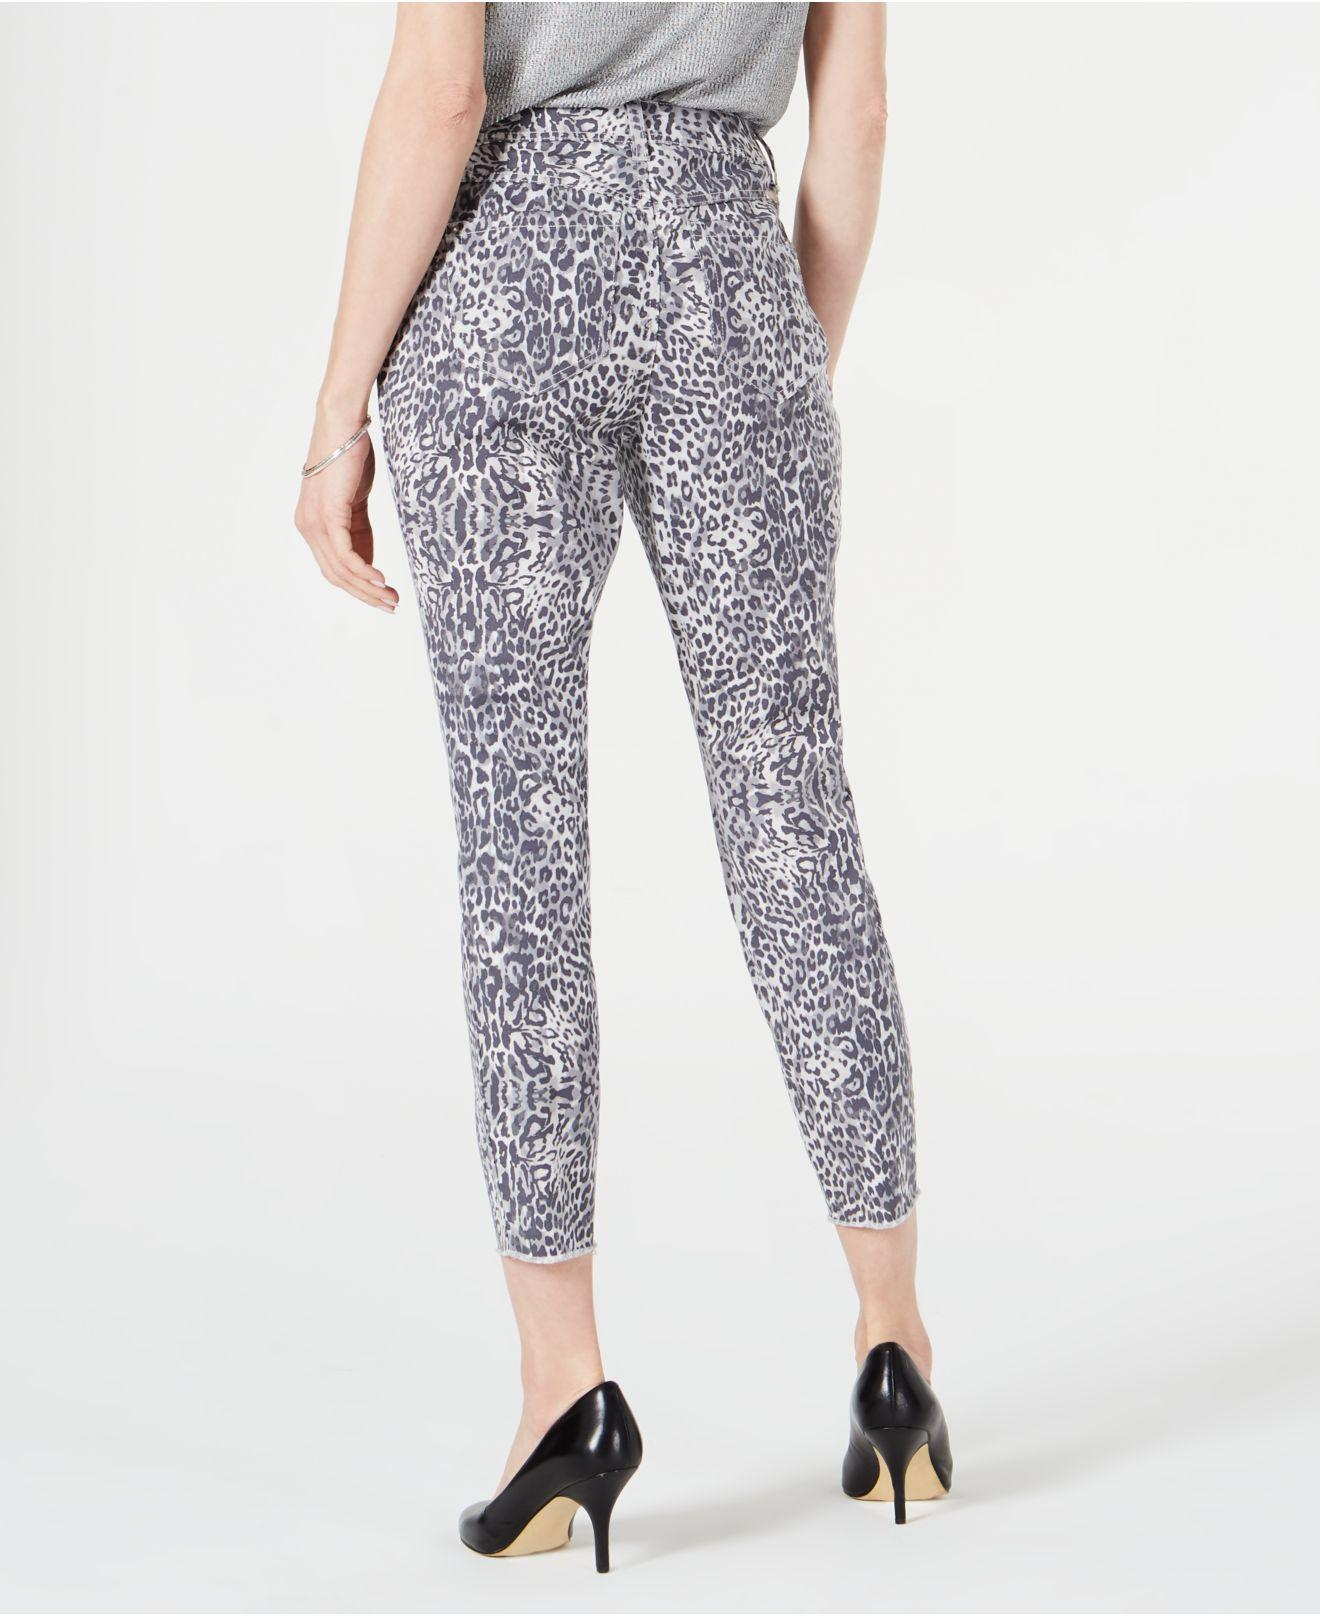 452004febee2 INC International Concepts I.n.c. Animal-print Curvy-fit Skinny Jeans,  Created For Macy's in Blue - Lyst